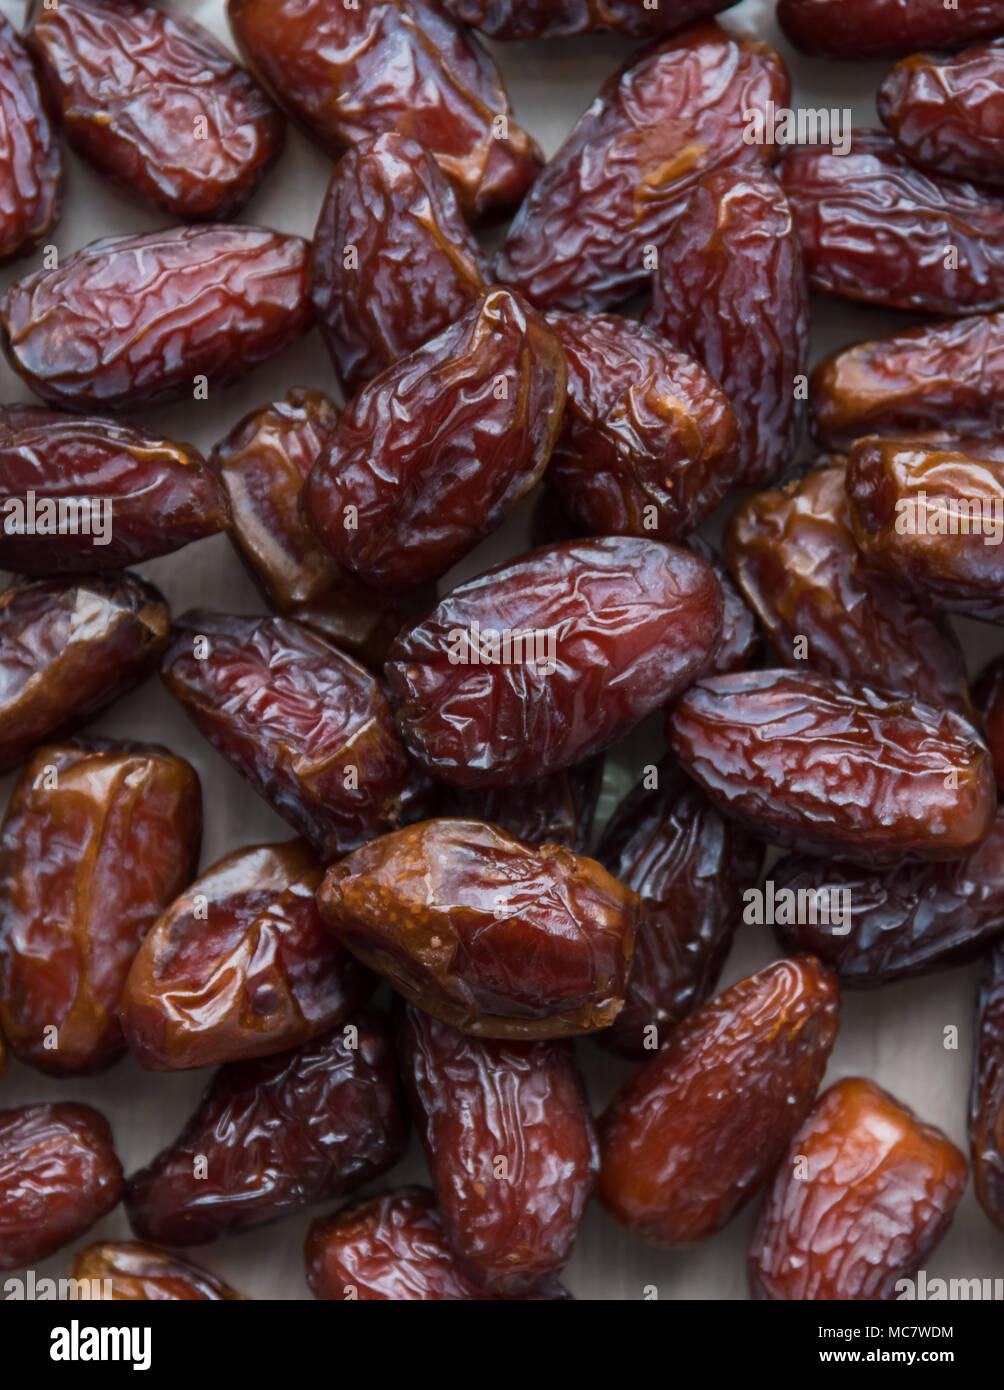 Close-up full-frame flat-lay of medjool dates - Stock Image